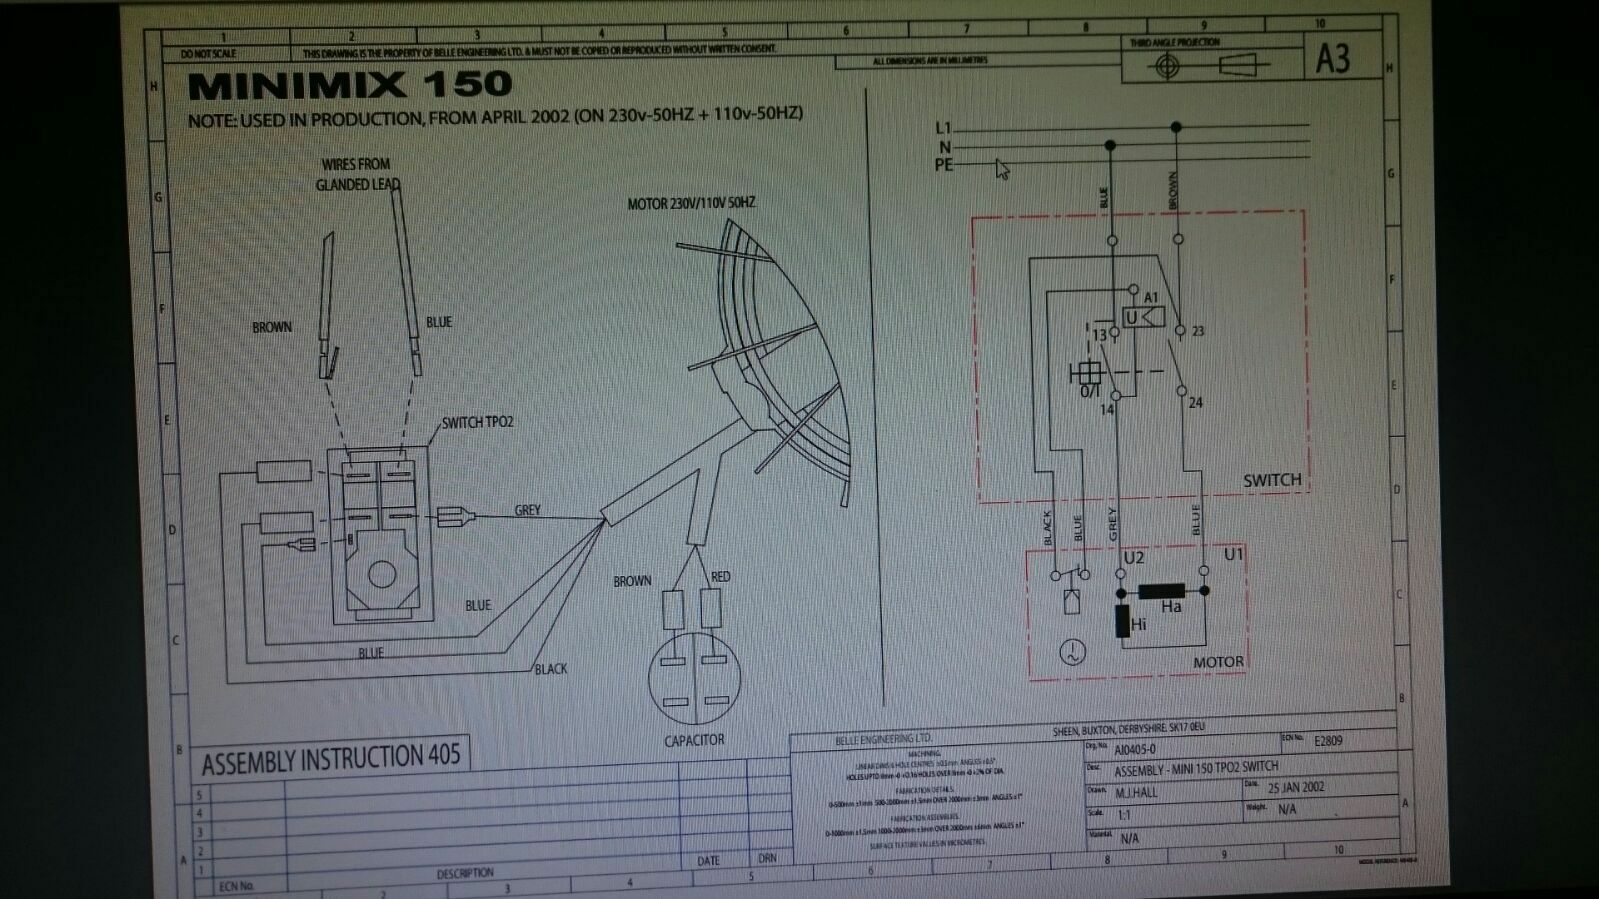 Belle Cement Mixer 110v Wiring Diagram Free Download • Oasis-dl.co